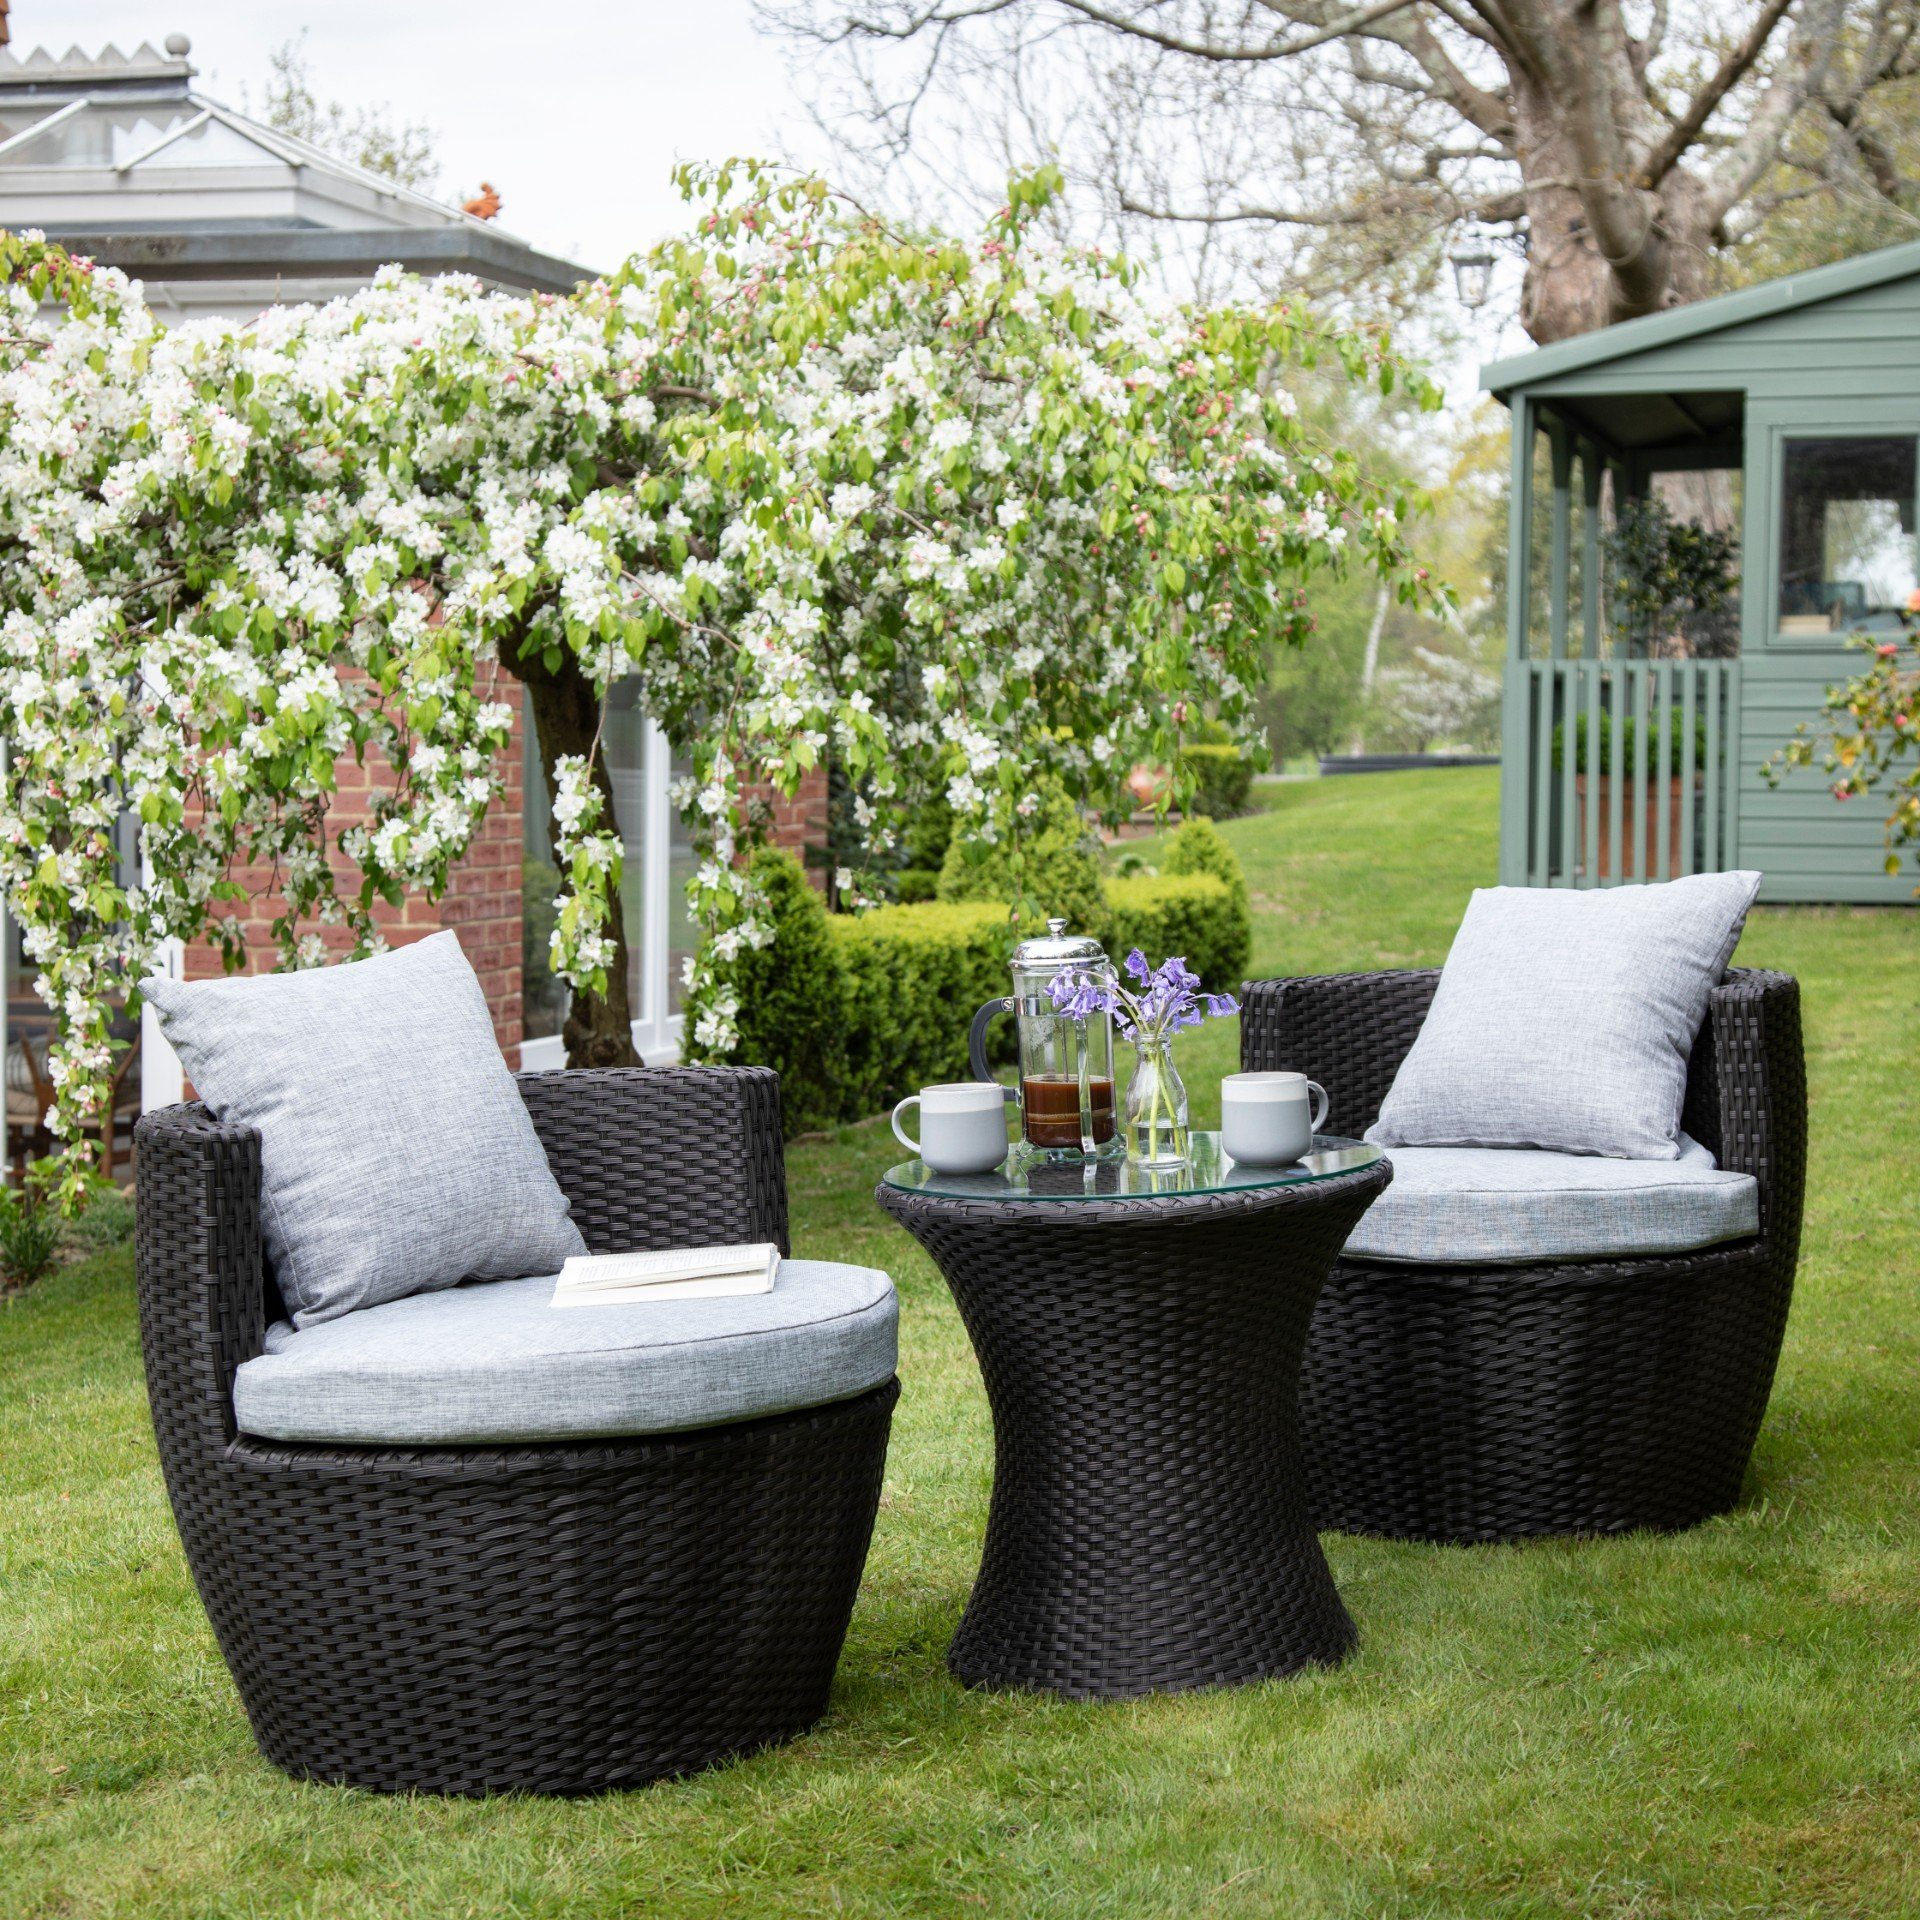 2 Seater Rattan Egg Chair Bistro Set - Black - Laura James